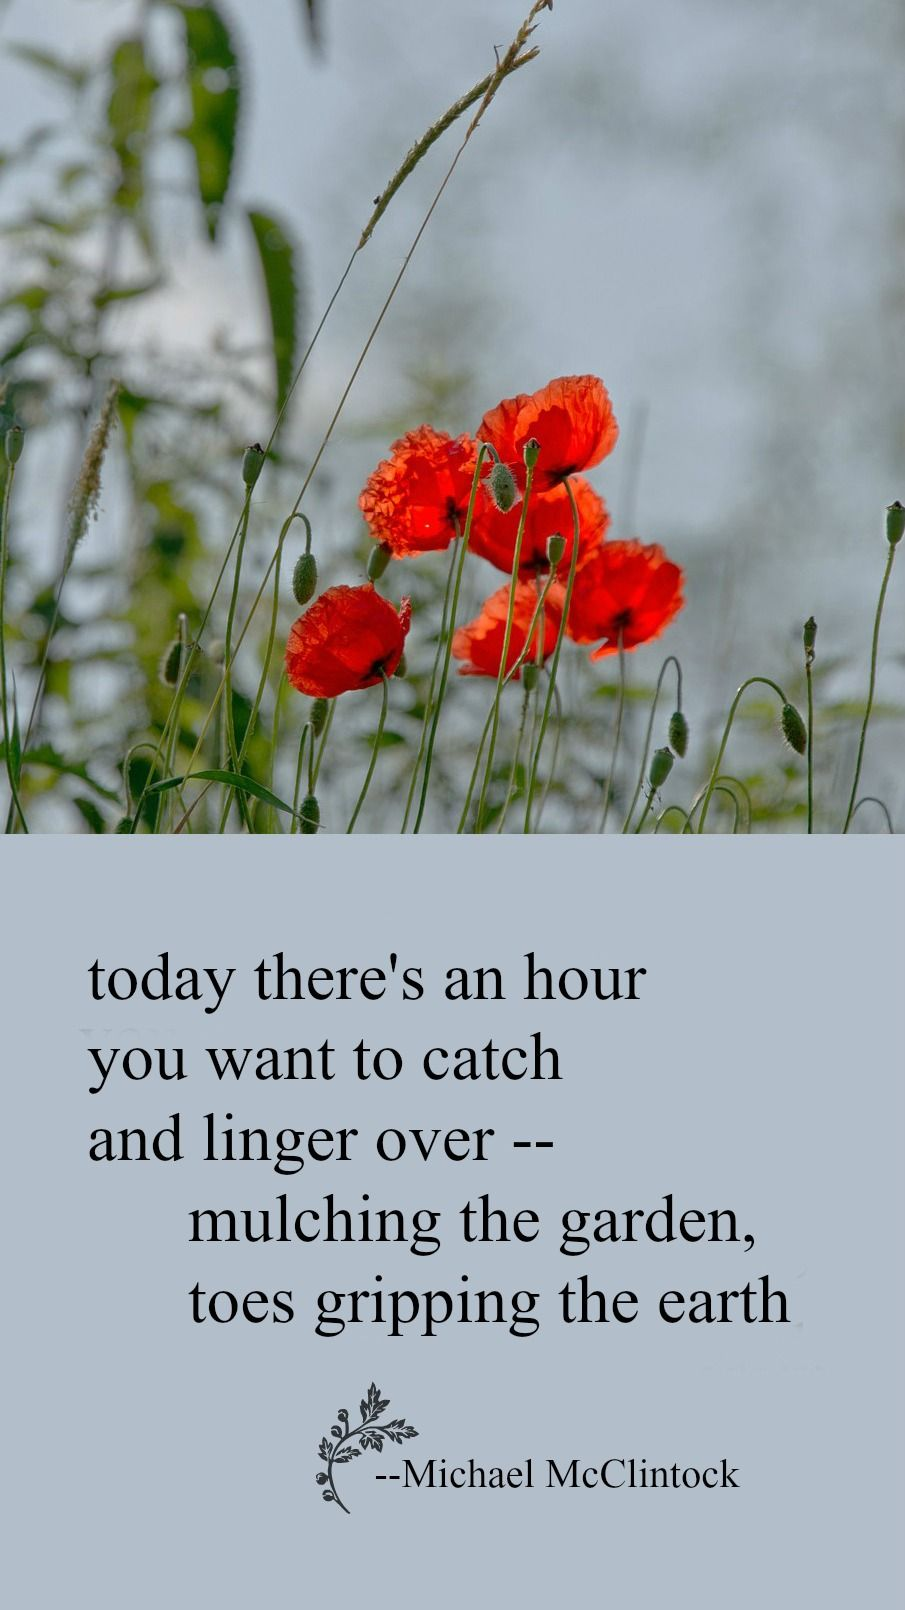 Tanka poem today there's an hour by Michael McClintock